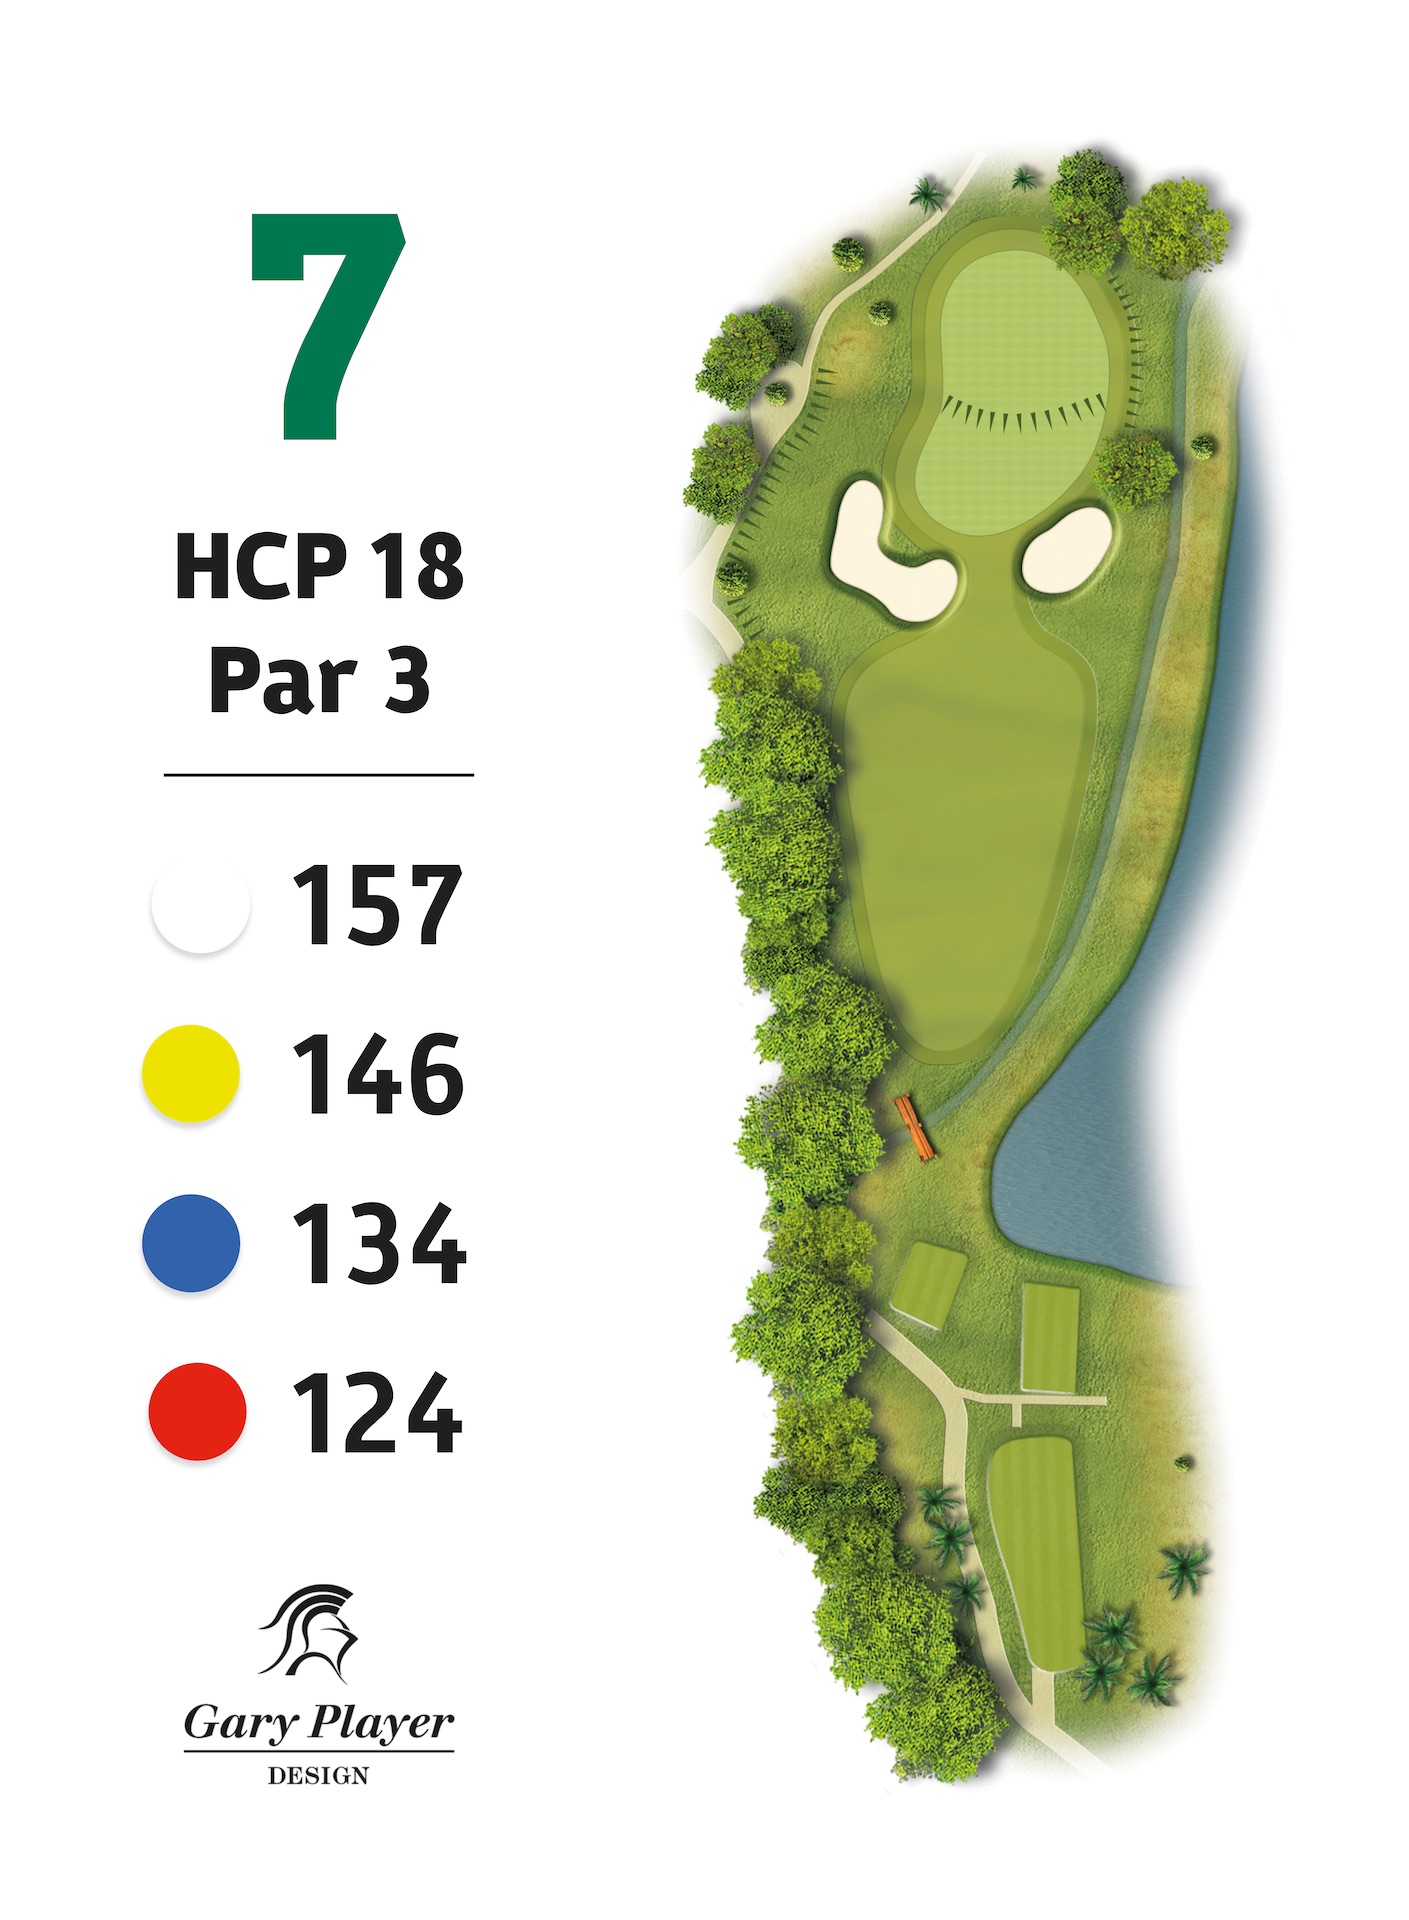 HOLE 7 | This par 3 offers a big green sloping severely from back left to front right. Although the left side would seem the safer side due to the stream on the right, if you miss left you will be faced with a very tricky fast chip.